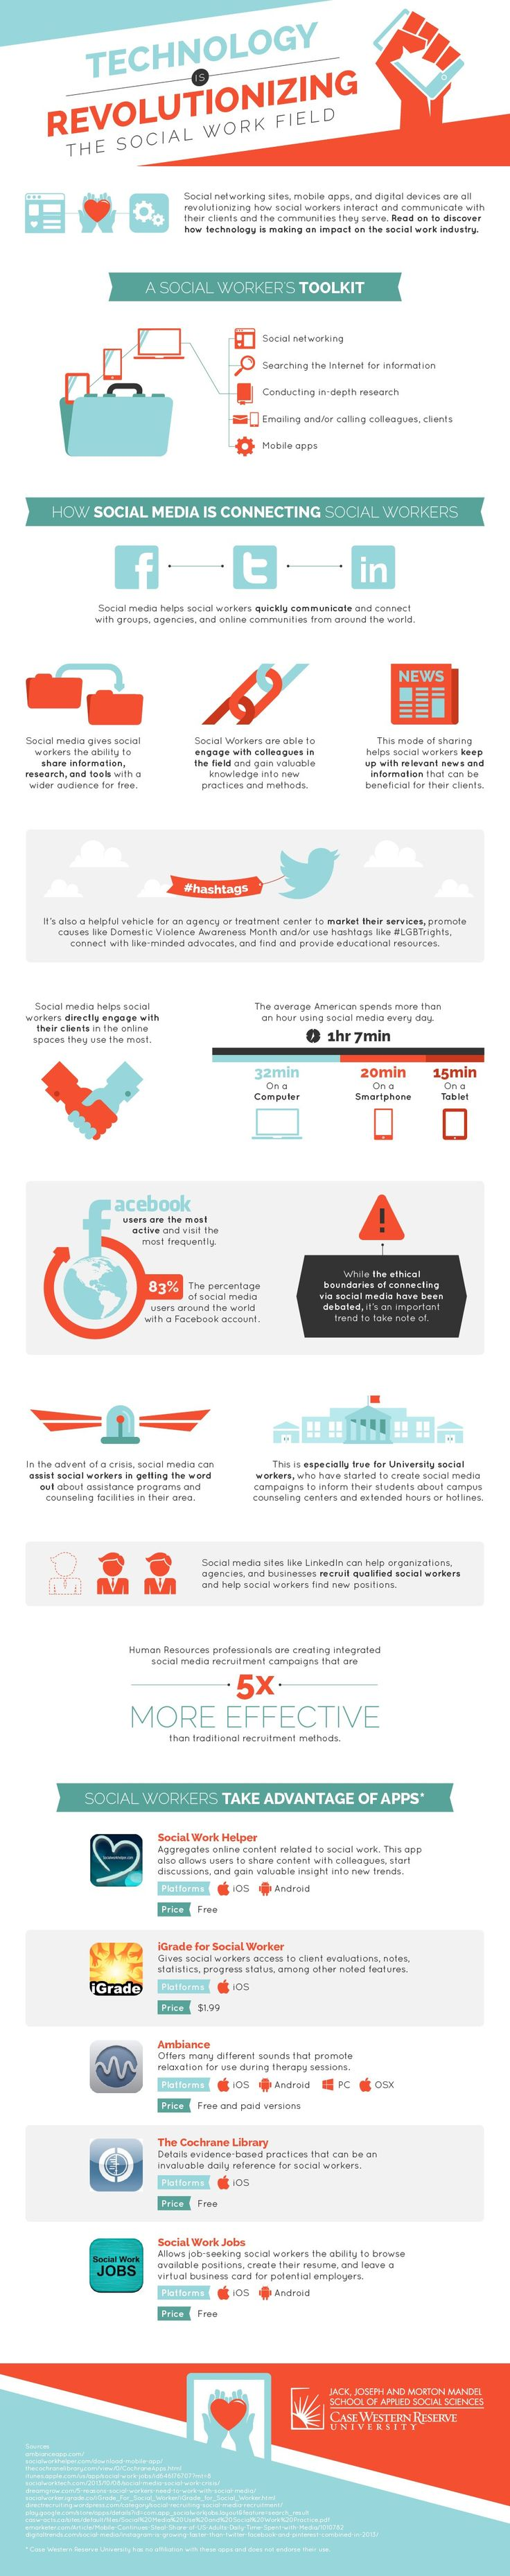 Technology is Revolutionizing the Social Work Field #infographic #TECH…